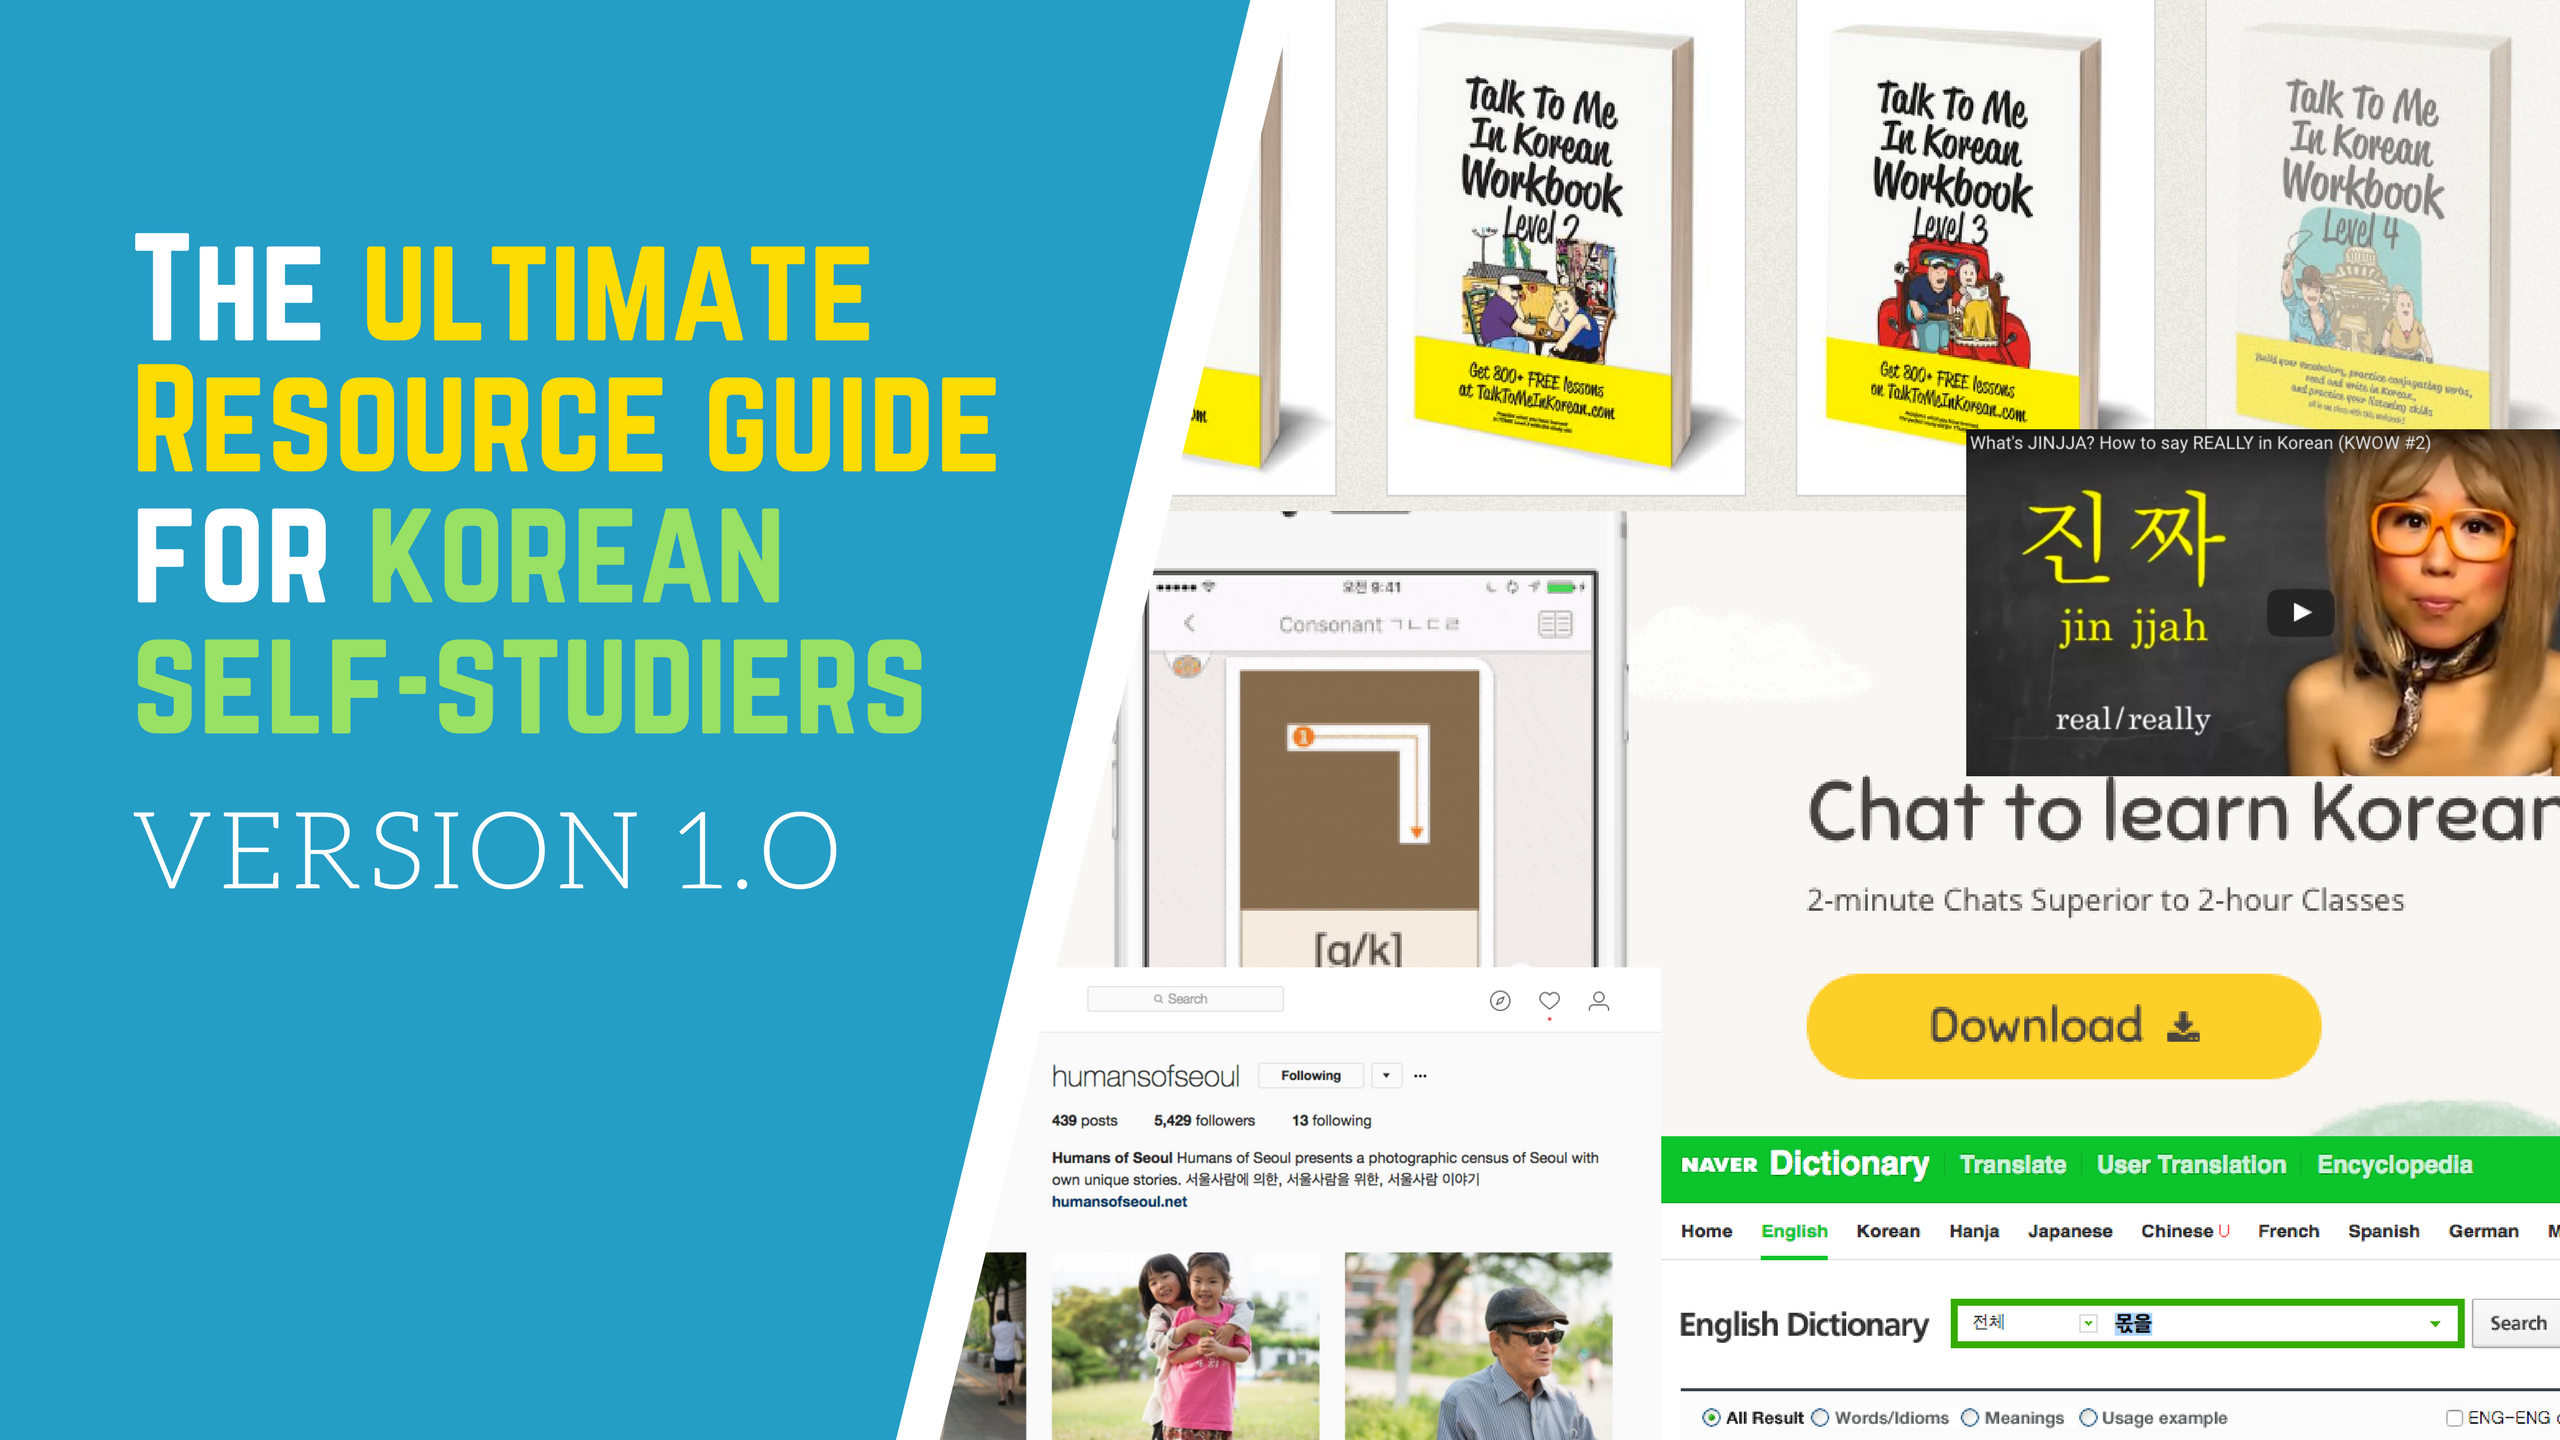 The Ultimate Resource Guide for Korean Self-Studiers